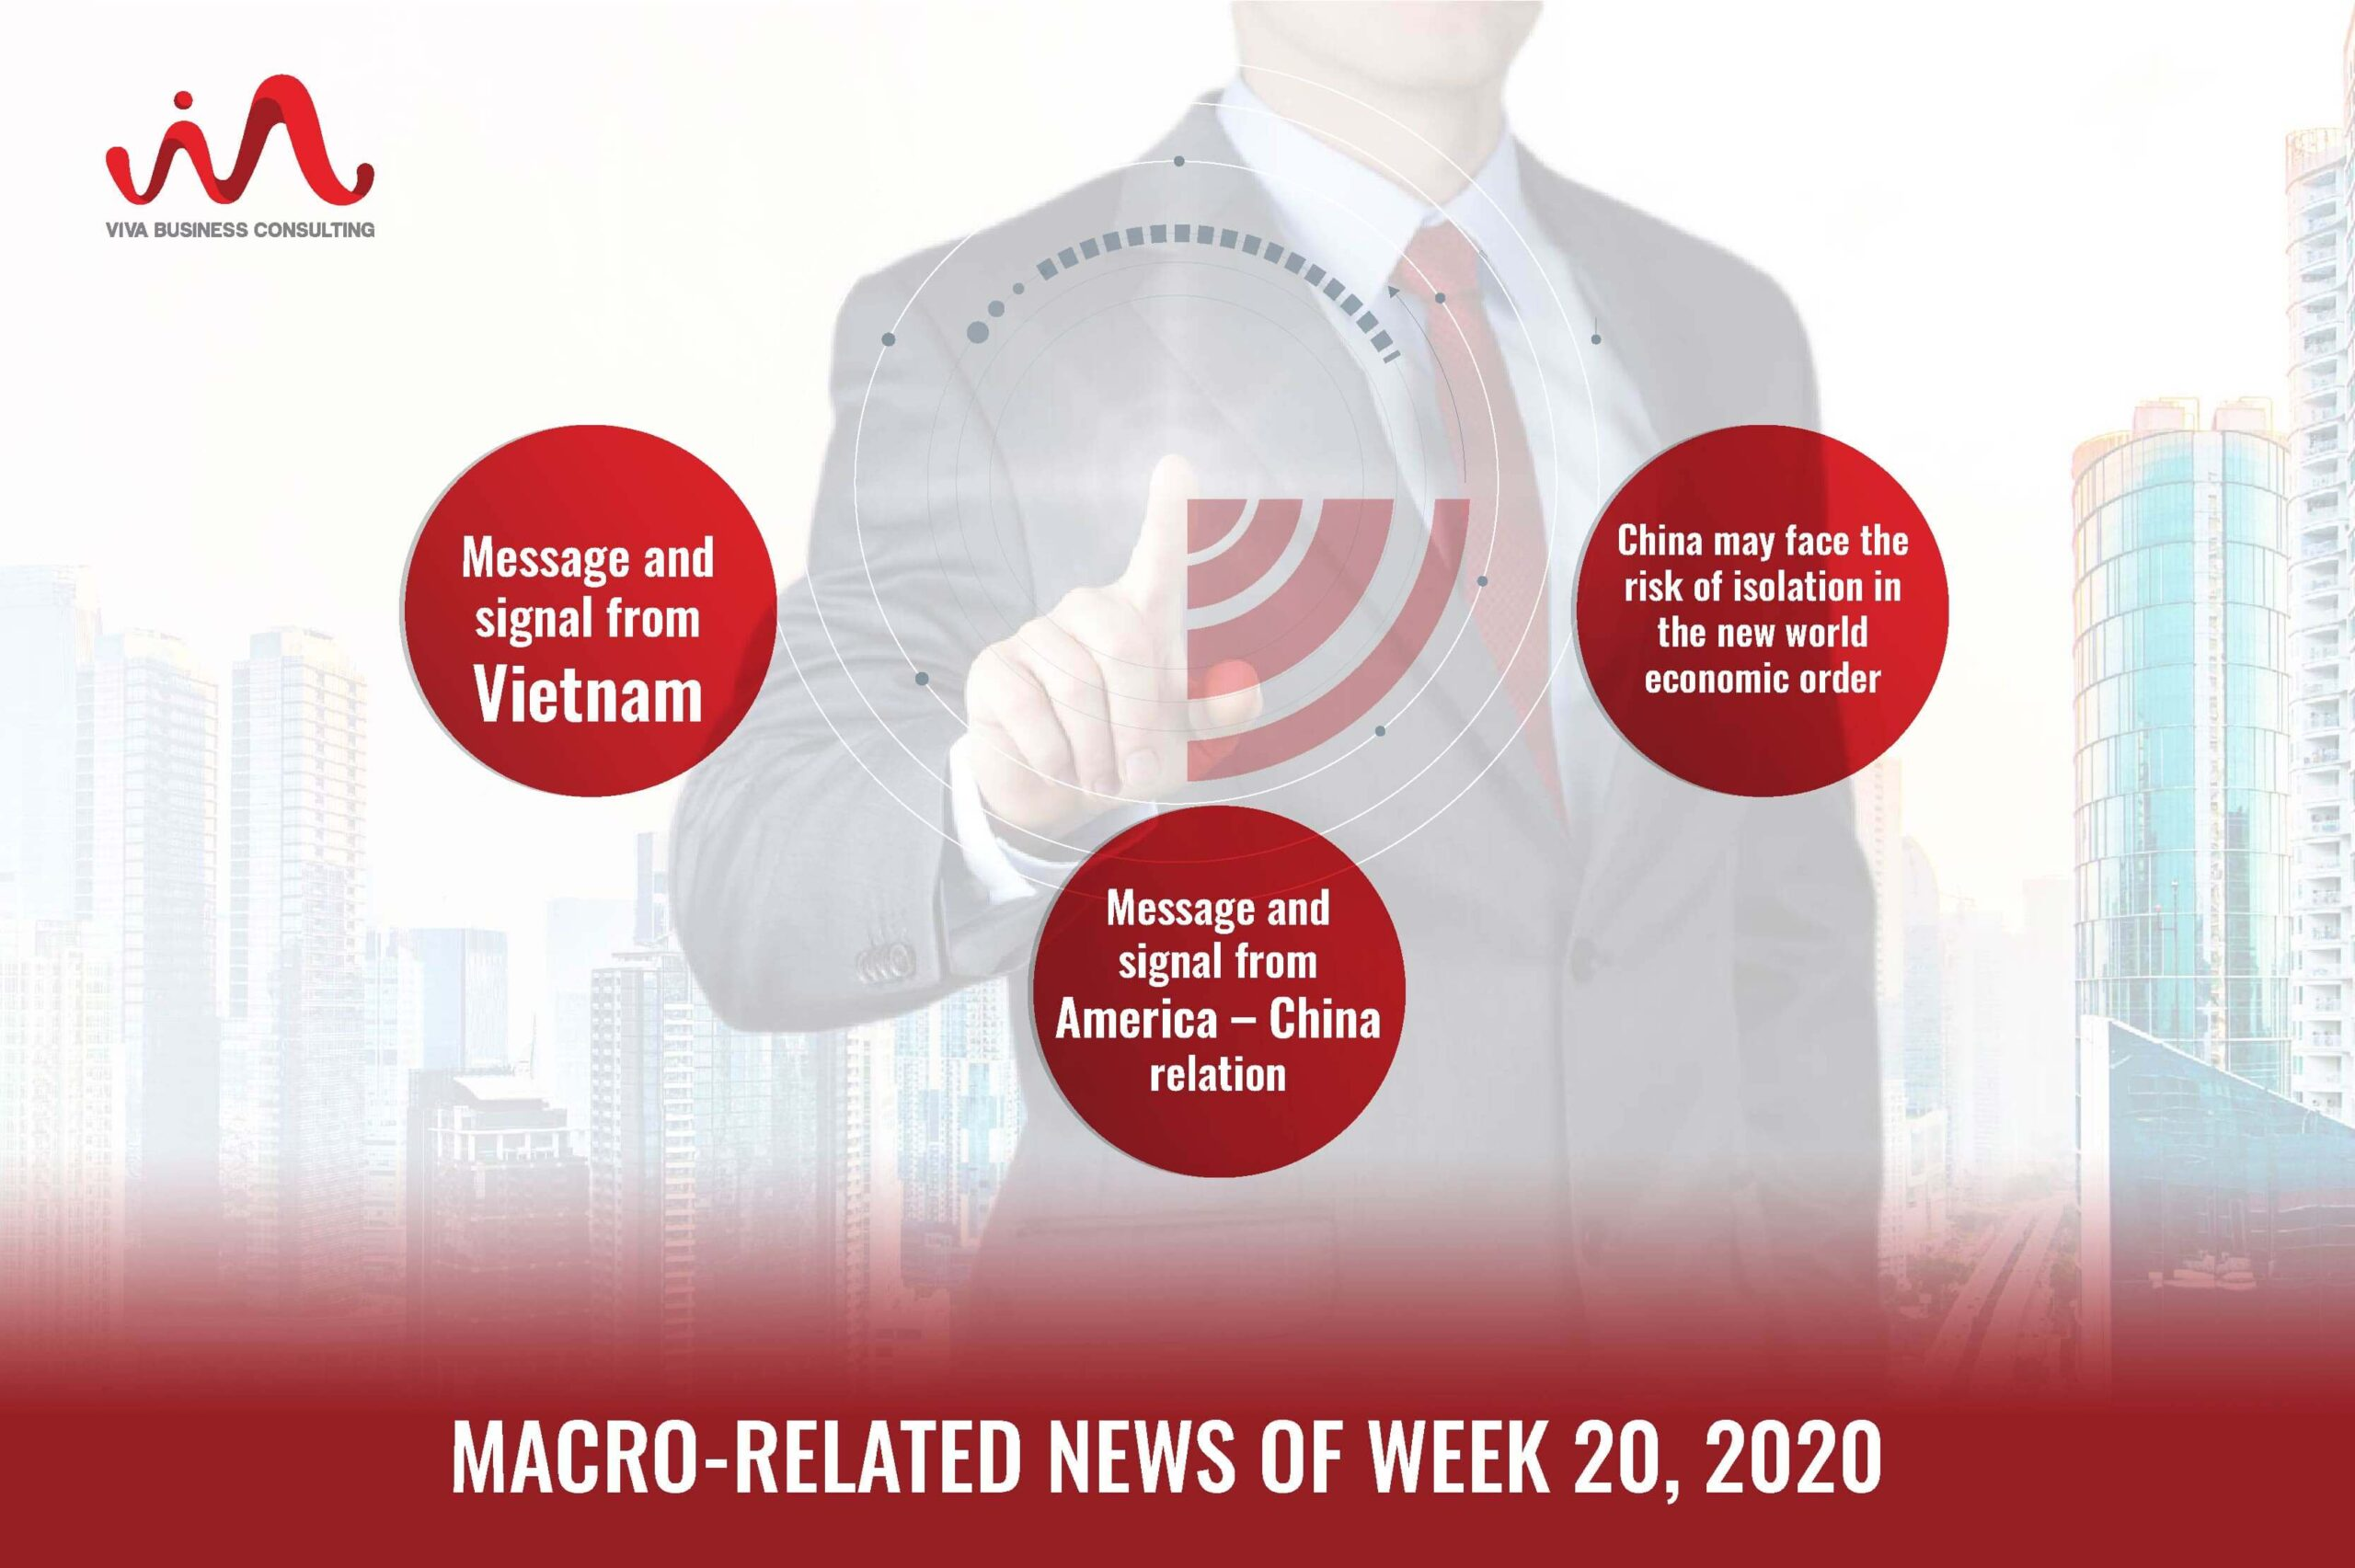 marco related news of week 20